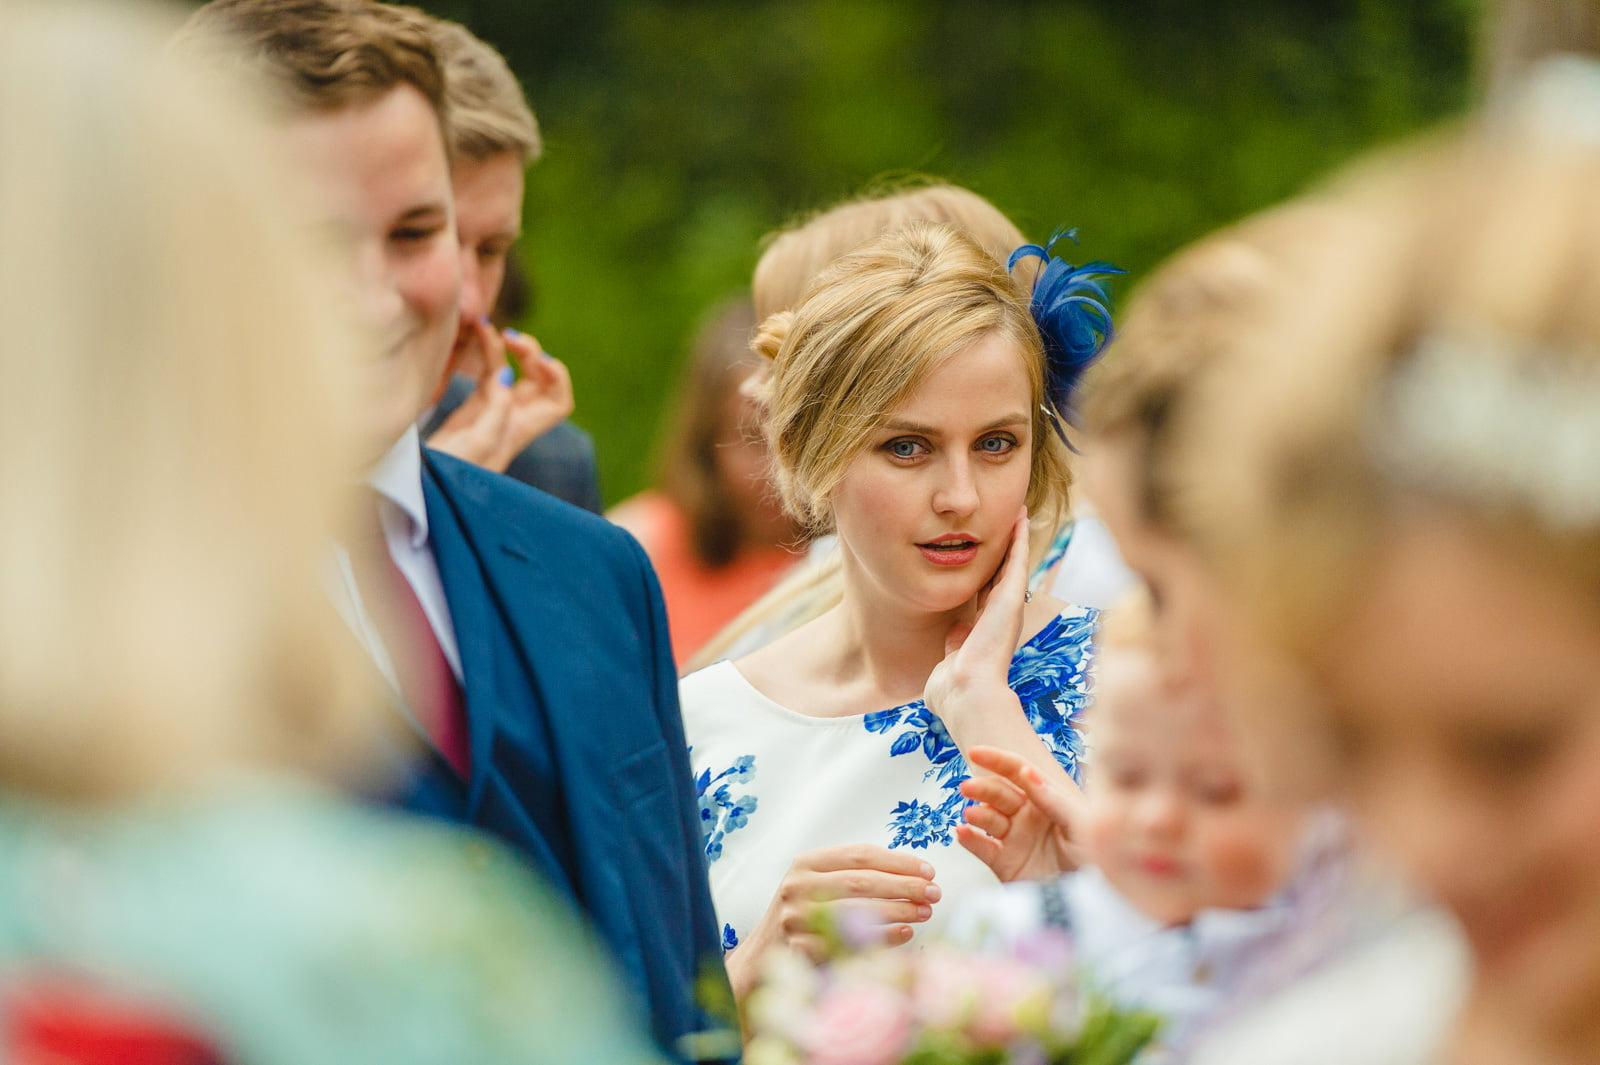 millers of netley wedding 32 - Millers Of Netley wedding, Dorrington, Shrewsbury | Emma + Ben